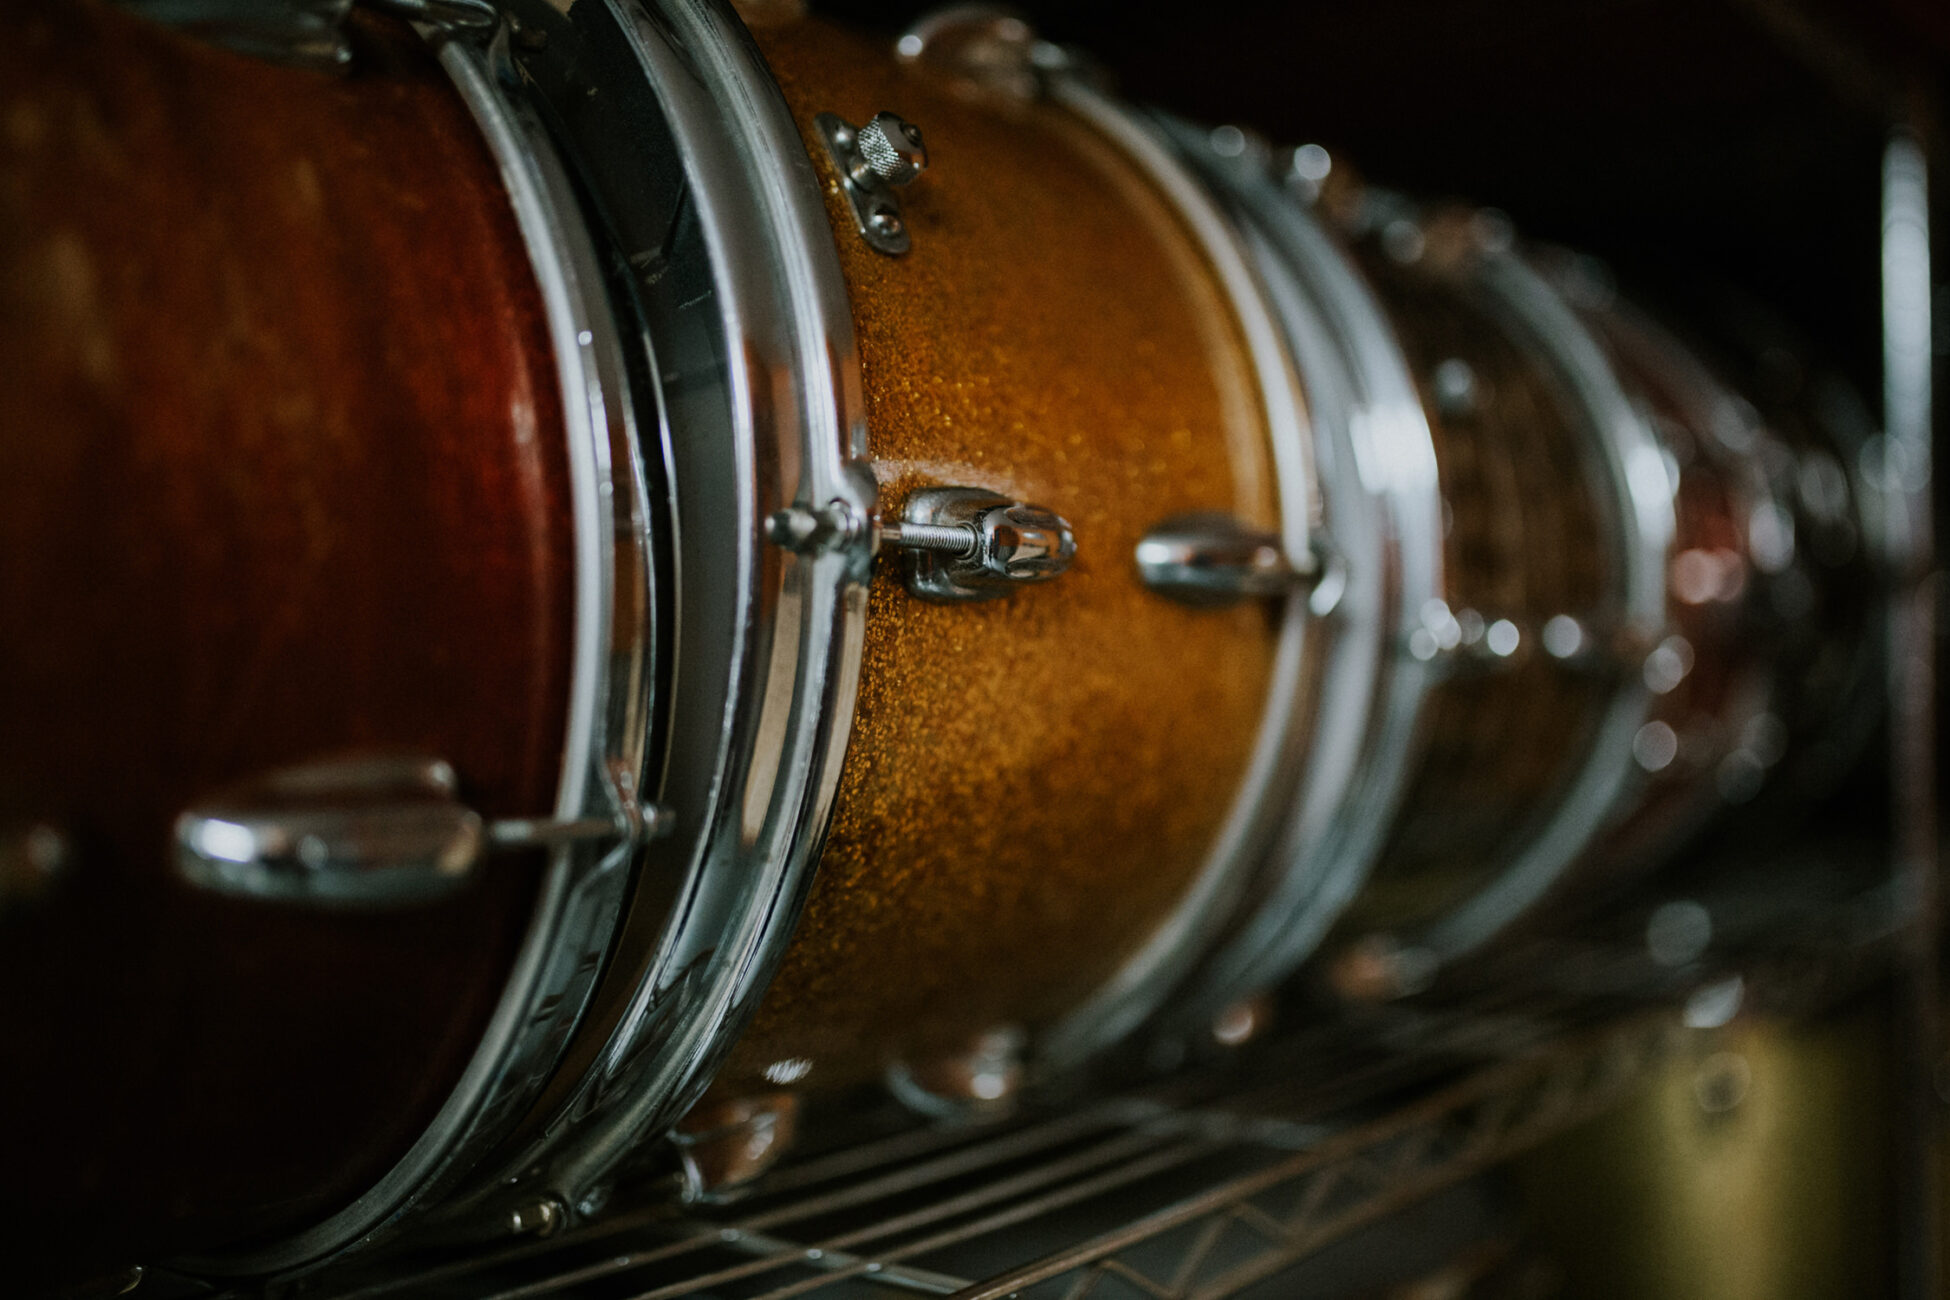 details of drums taken during a branding photography session in essex